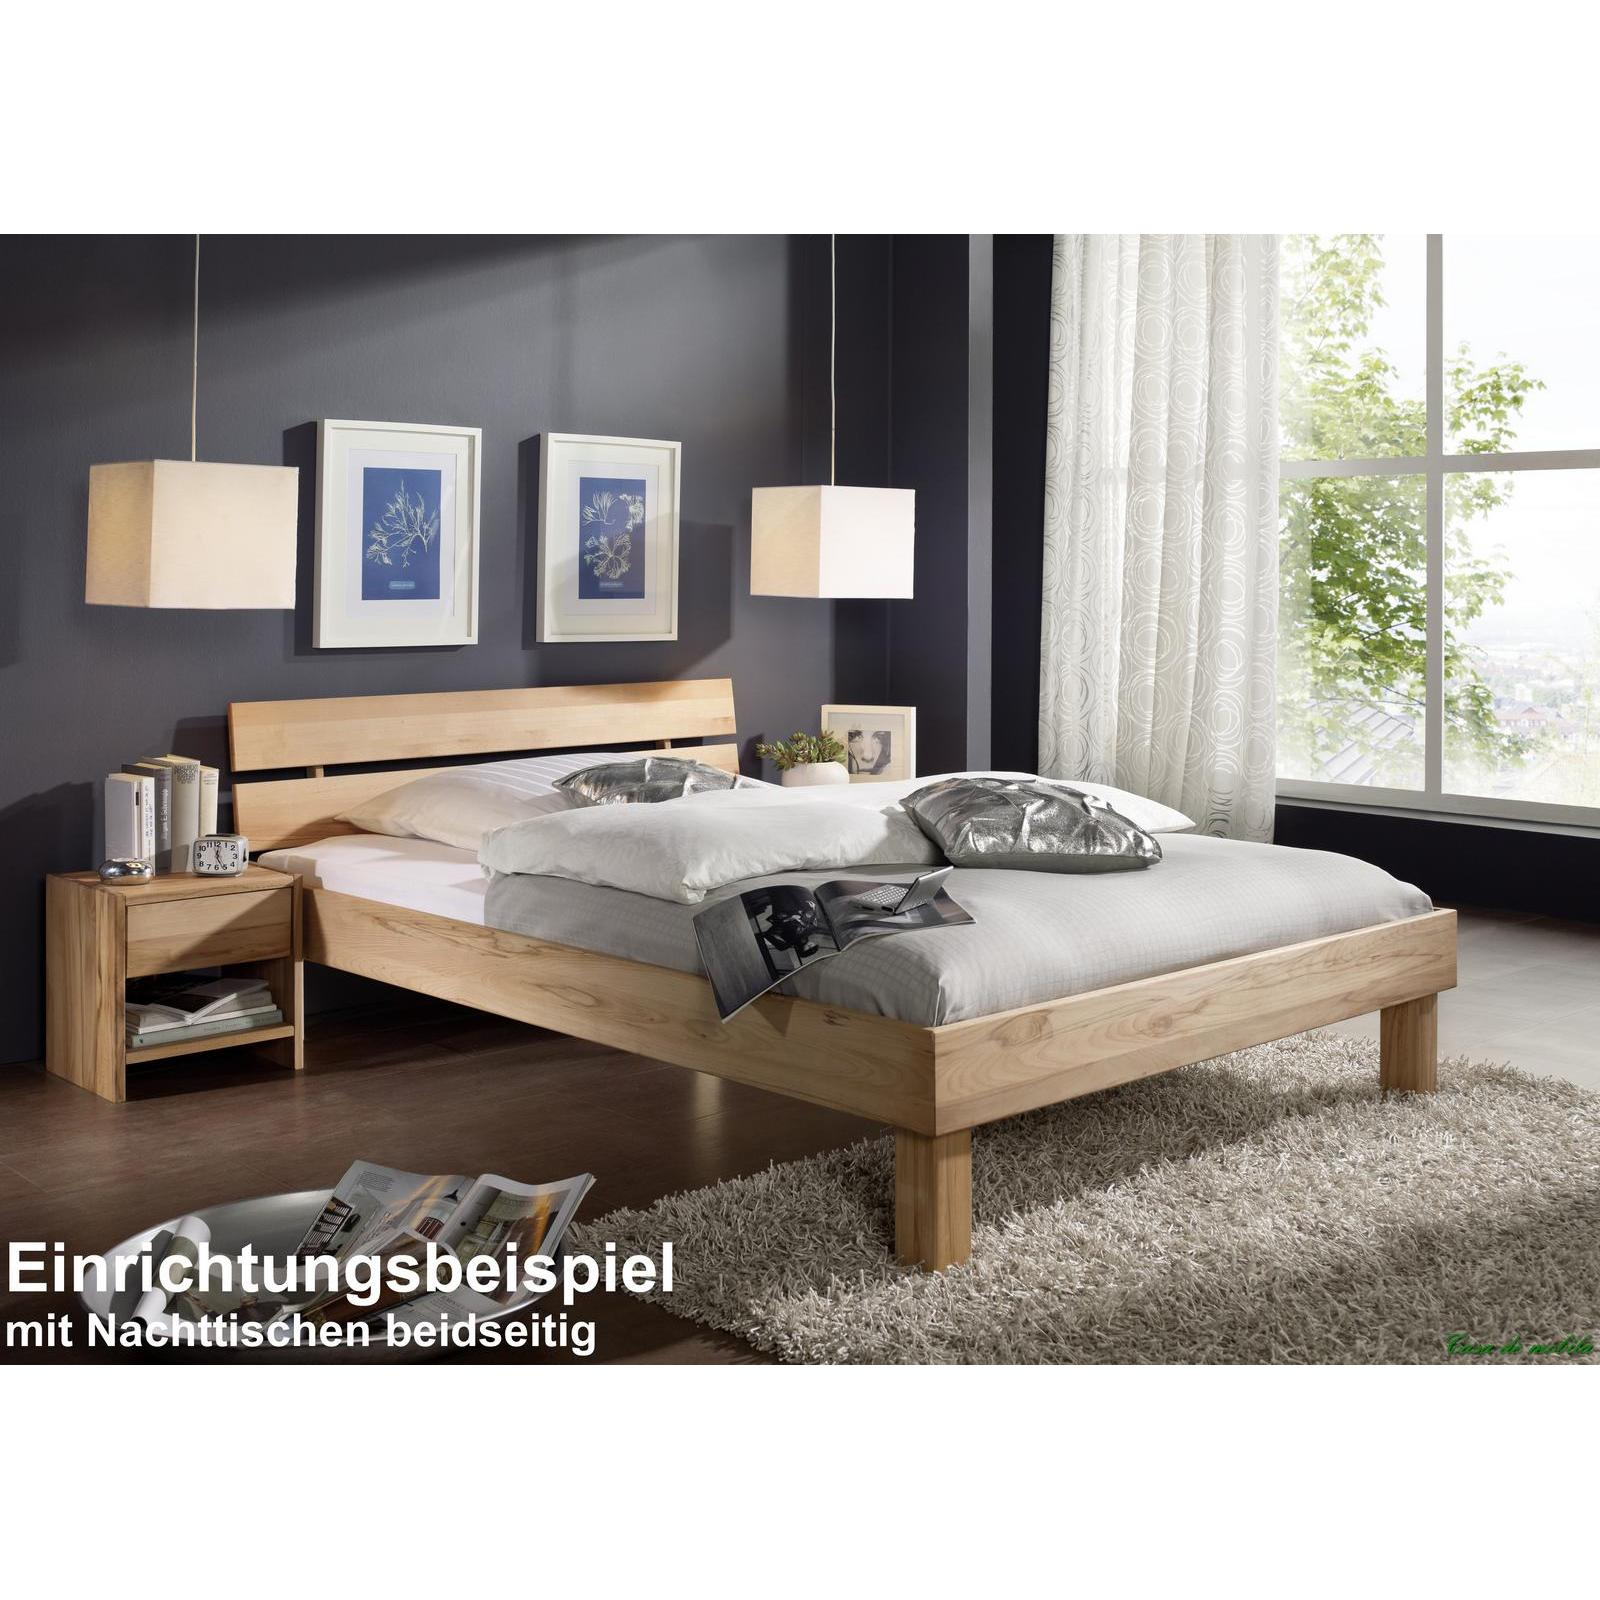 bett mit schubladen 100x200 jugendbett schubladenbett buche massiv holz ge lt ebay. Black Bedroom Furniture Sets. Home Design Ideas